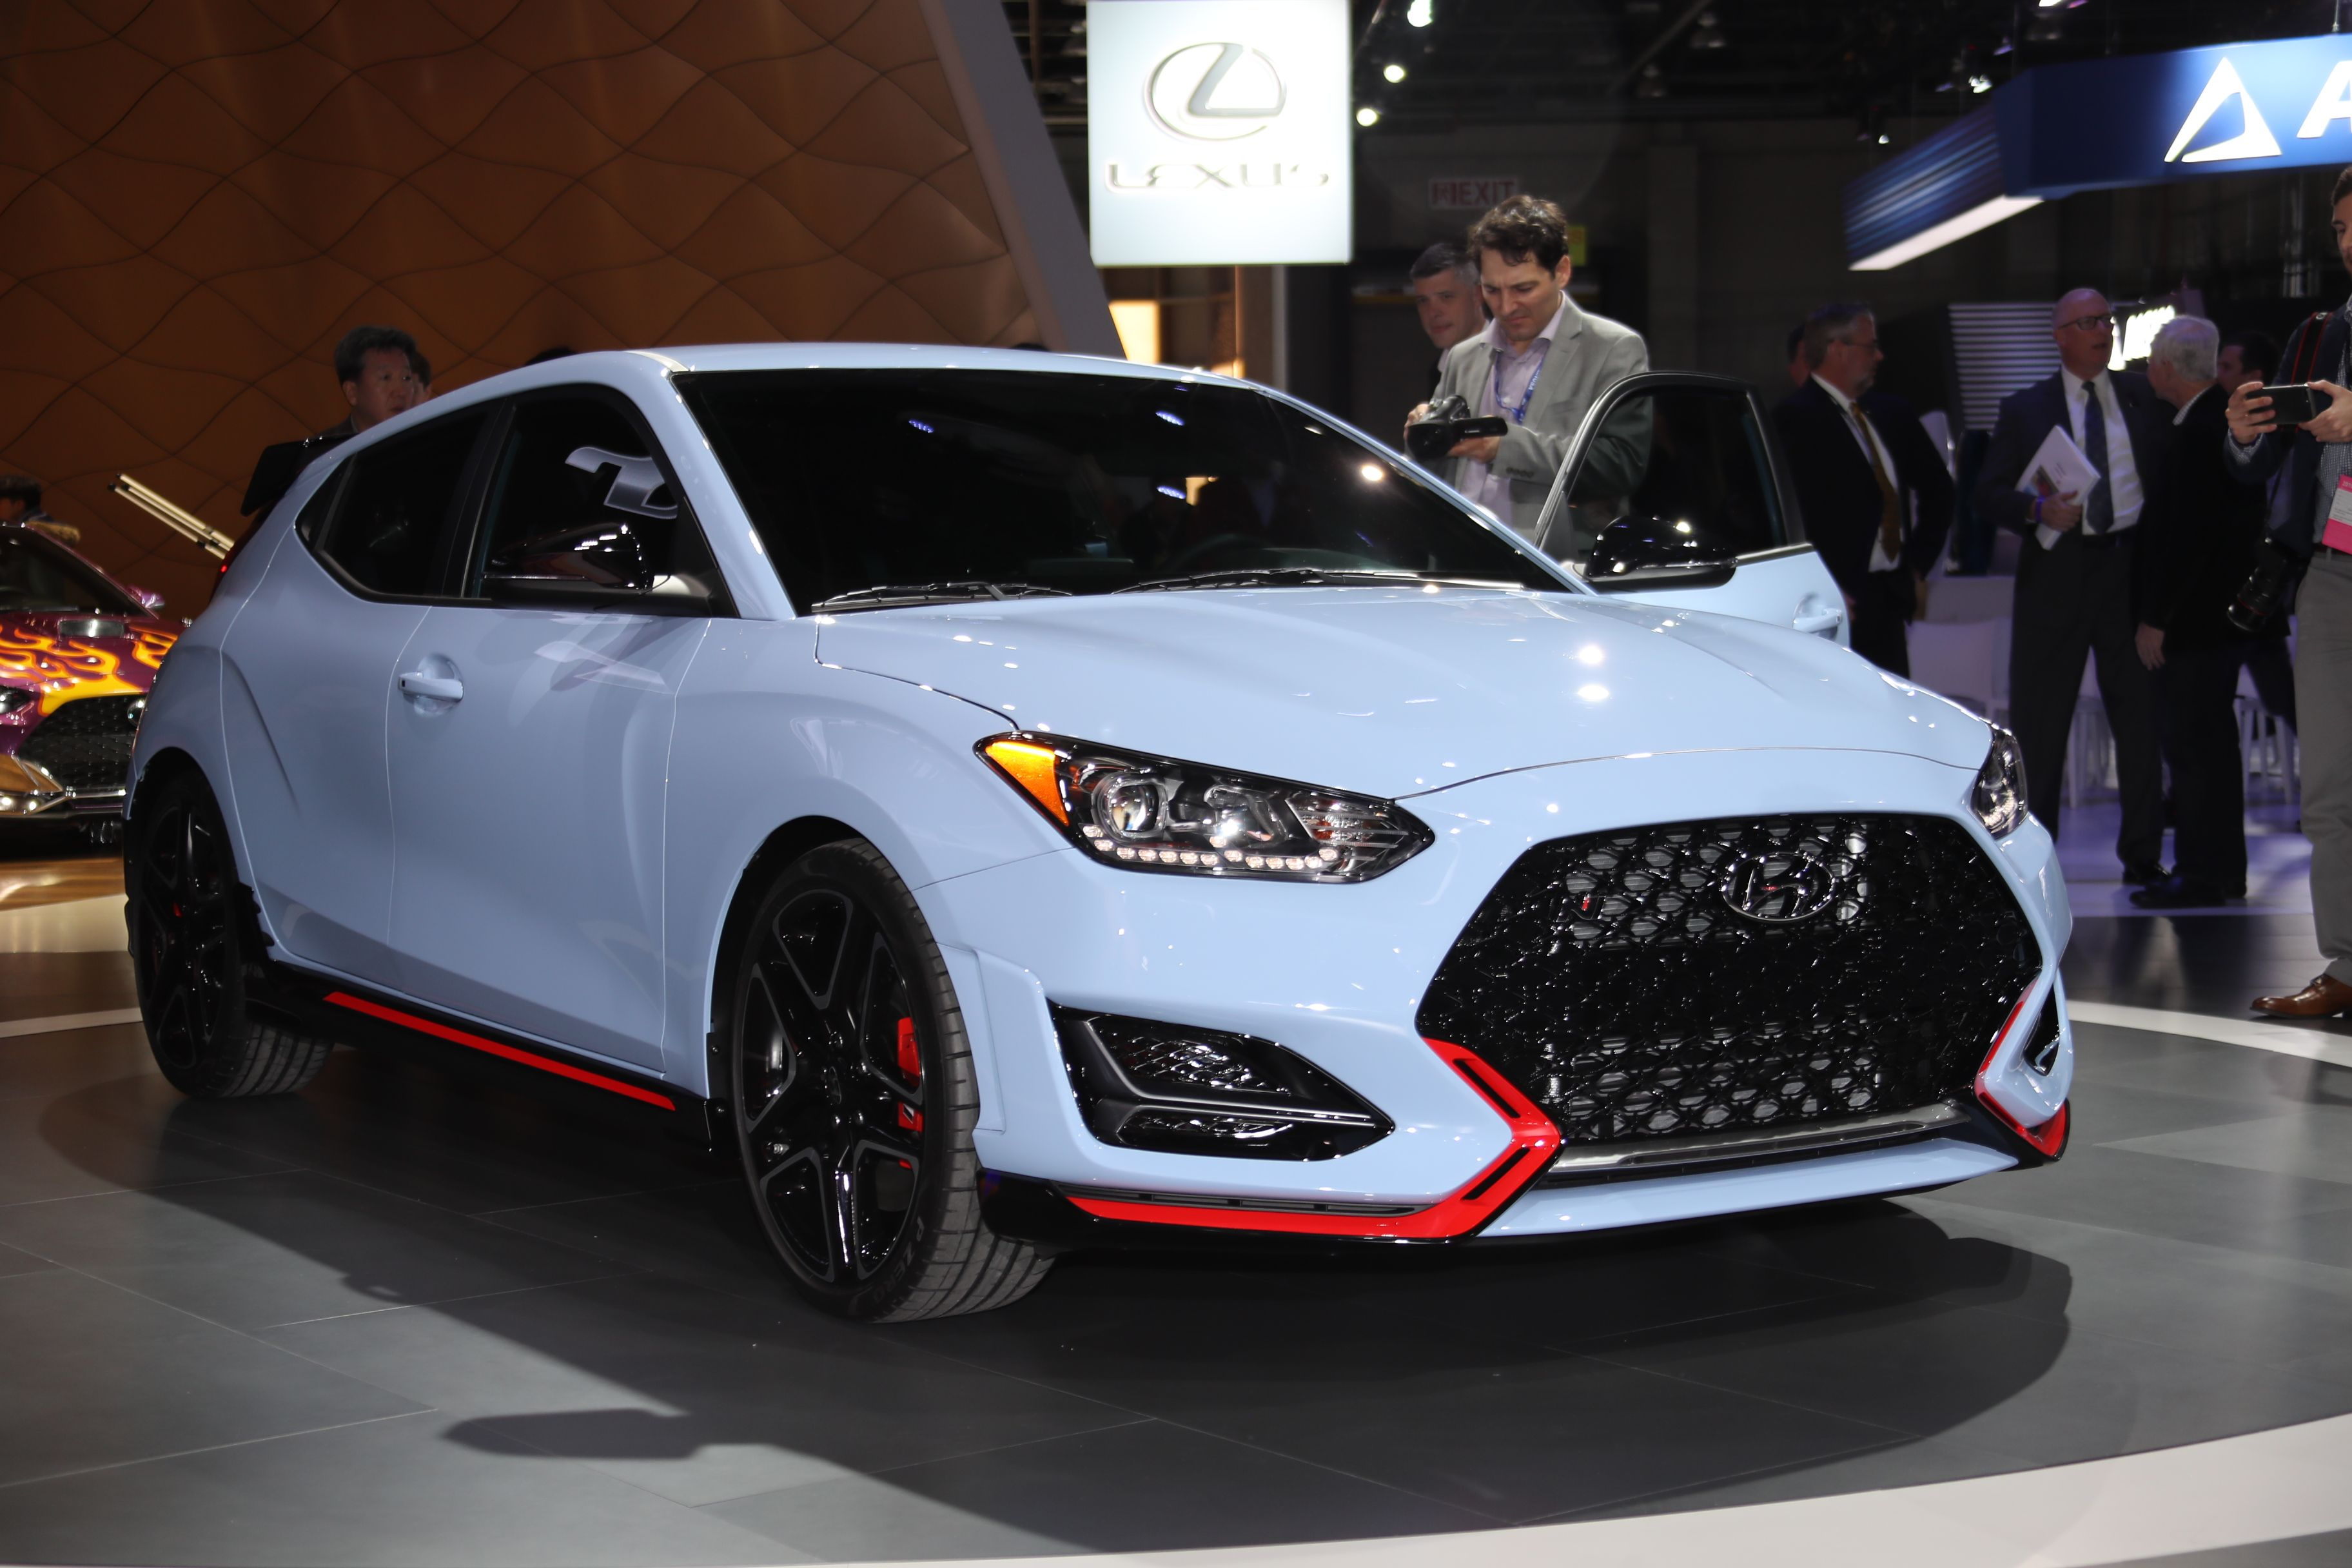 Detroit Auto Show News Pictures Road And Track - Automotive show